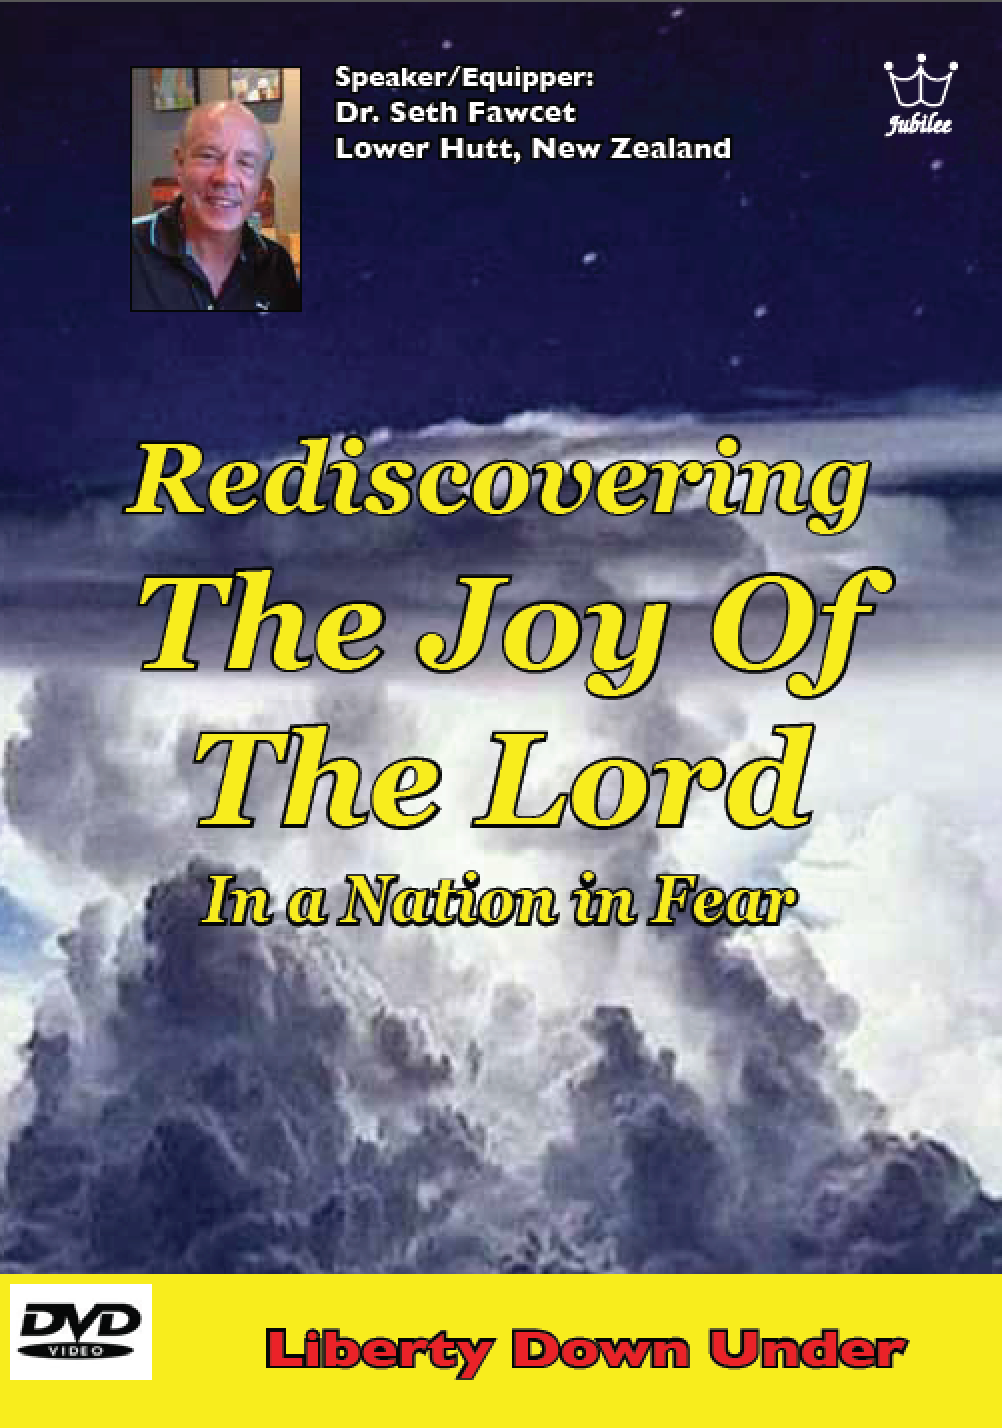 Rediscovering the Joy of the Lord, Dr. Seth Fawcet, MP4 Download